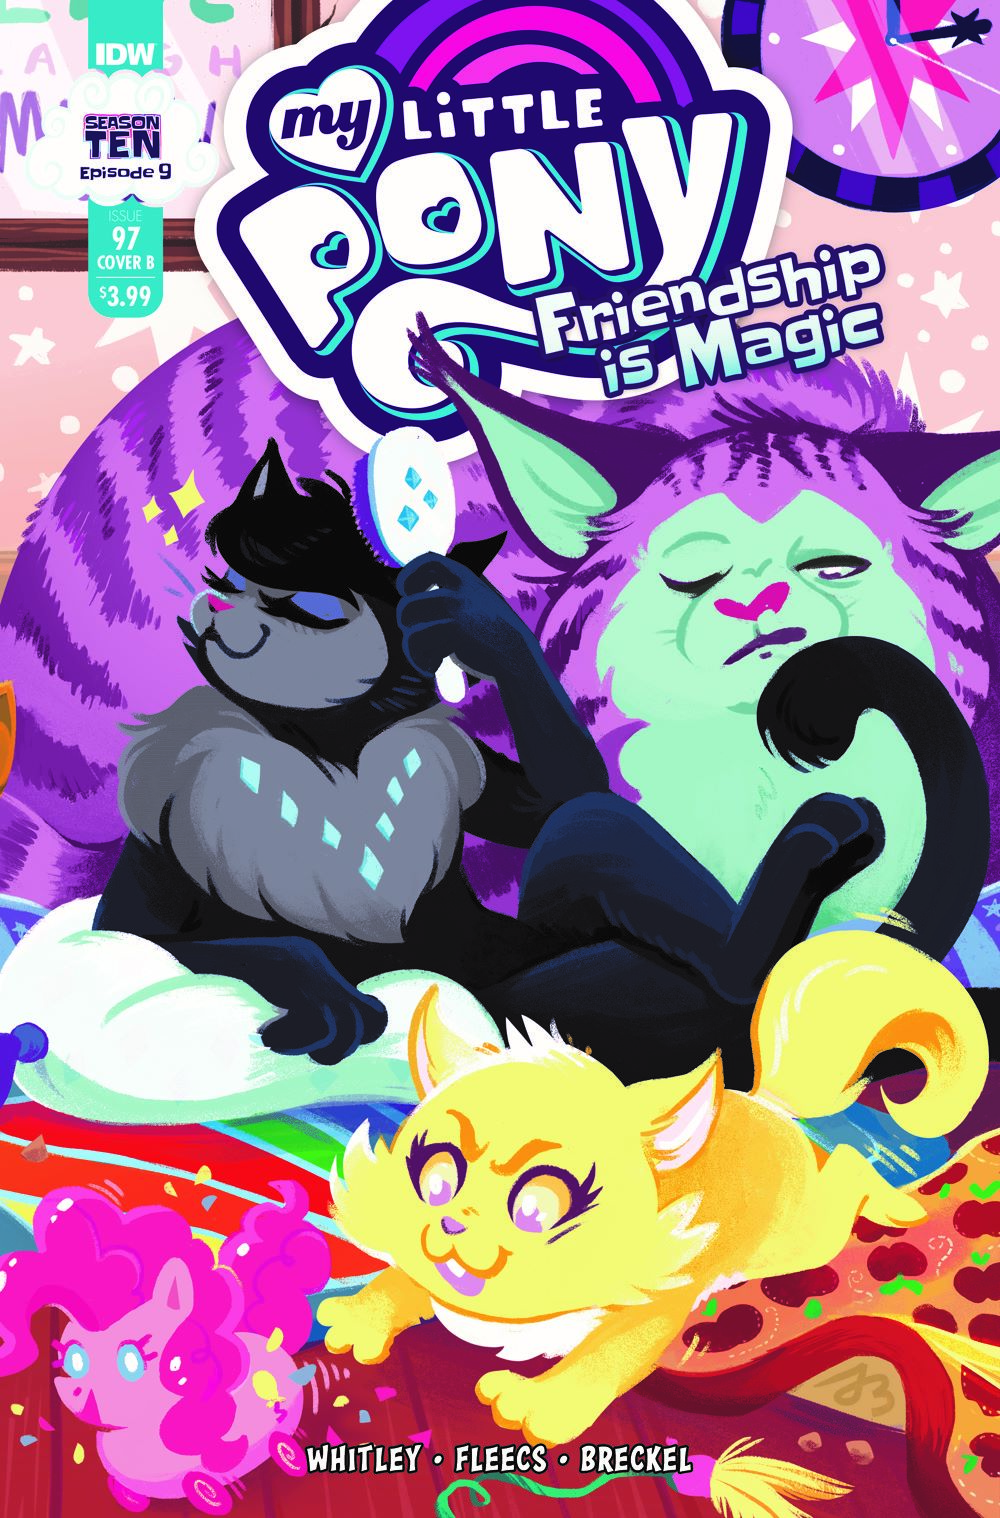 MLP97_09-coverB ComicList Previews: MY LITTLE PONY FRIENDSHIP IS MAGIC #97